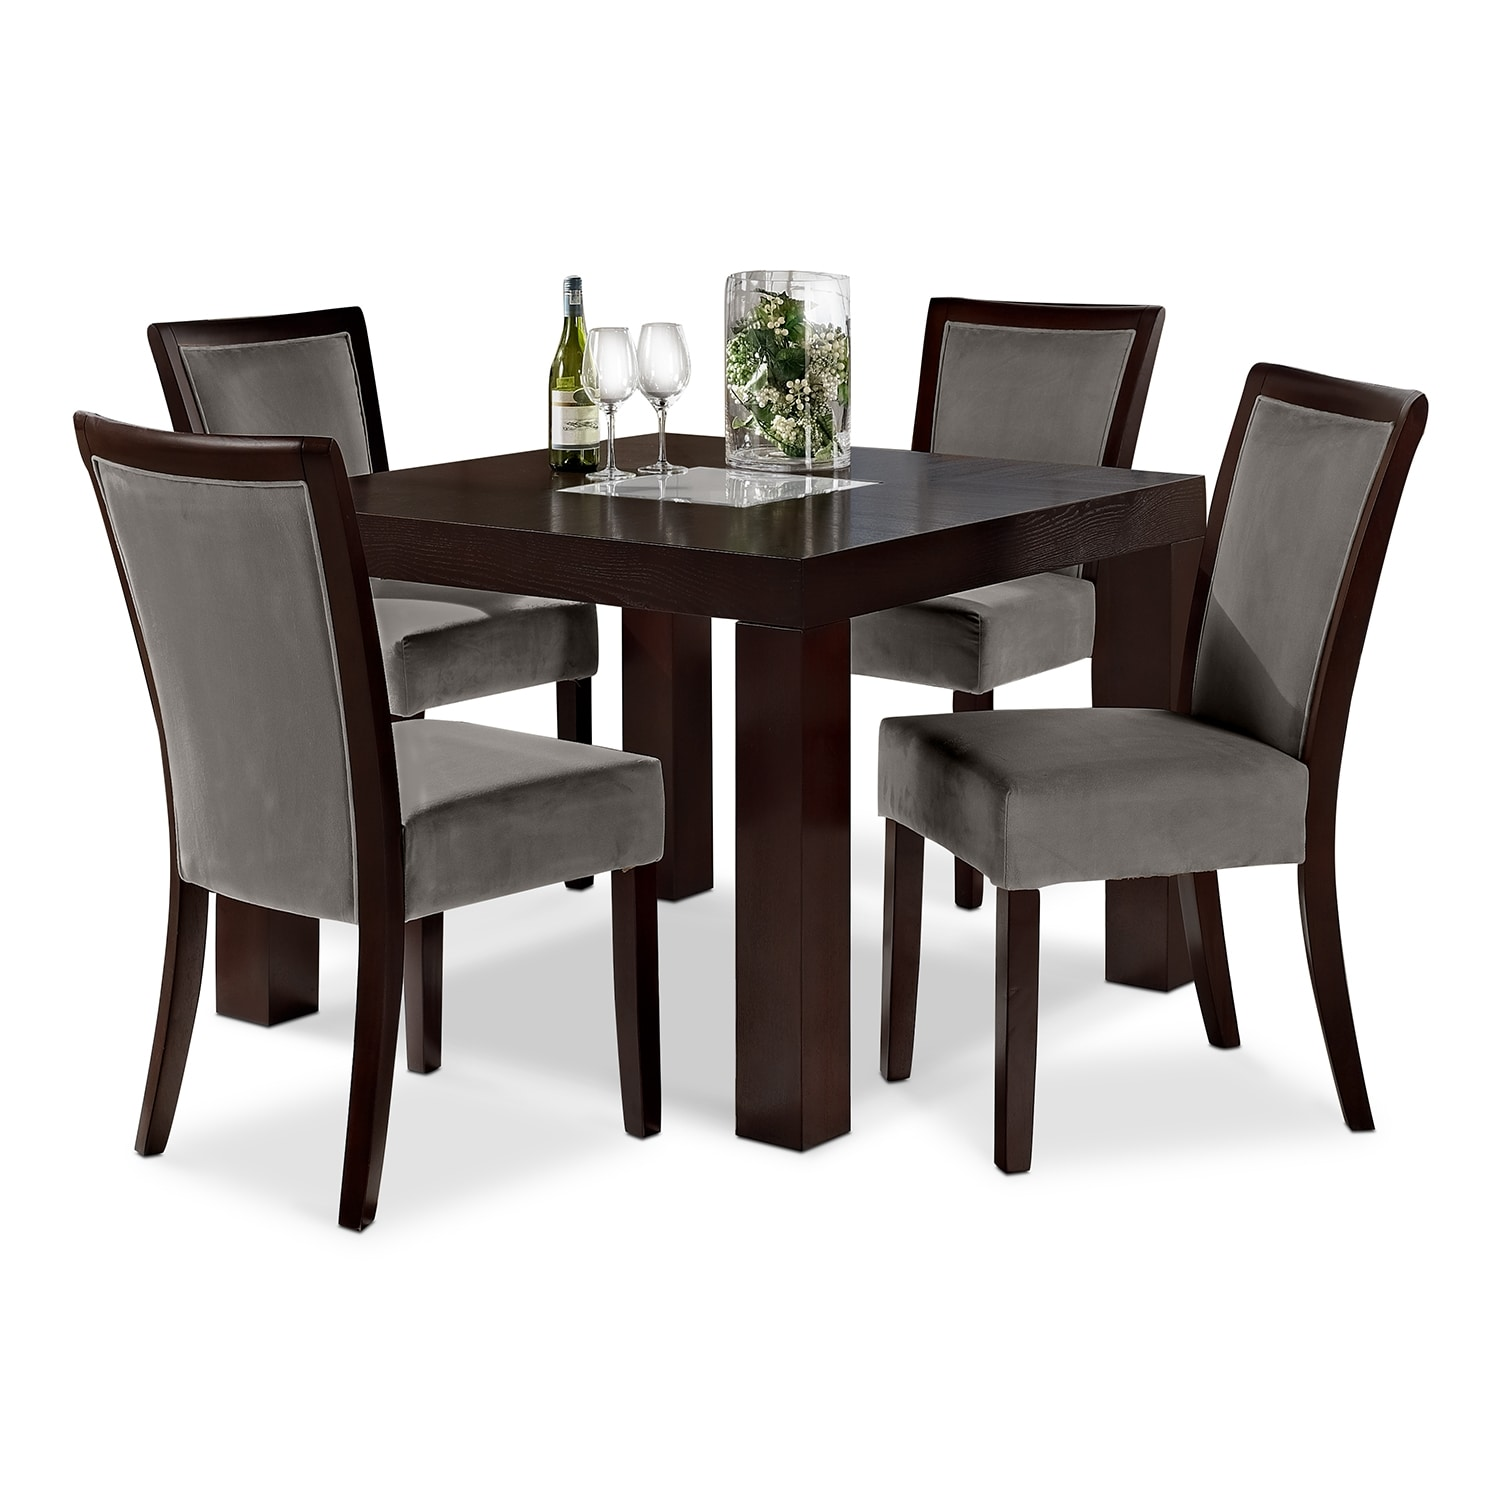 Tango Gray Dining Room 5 Pc. Dinette (42\